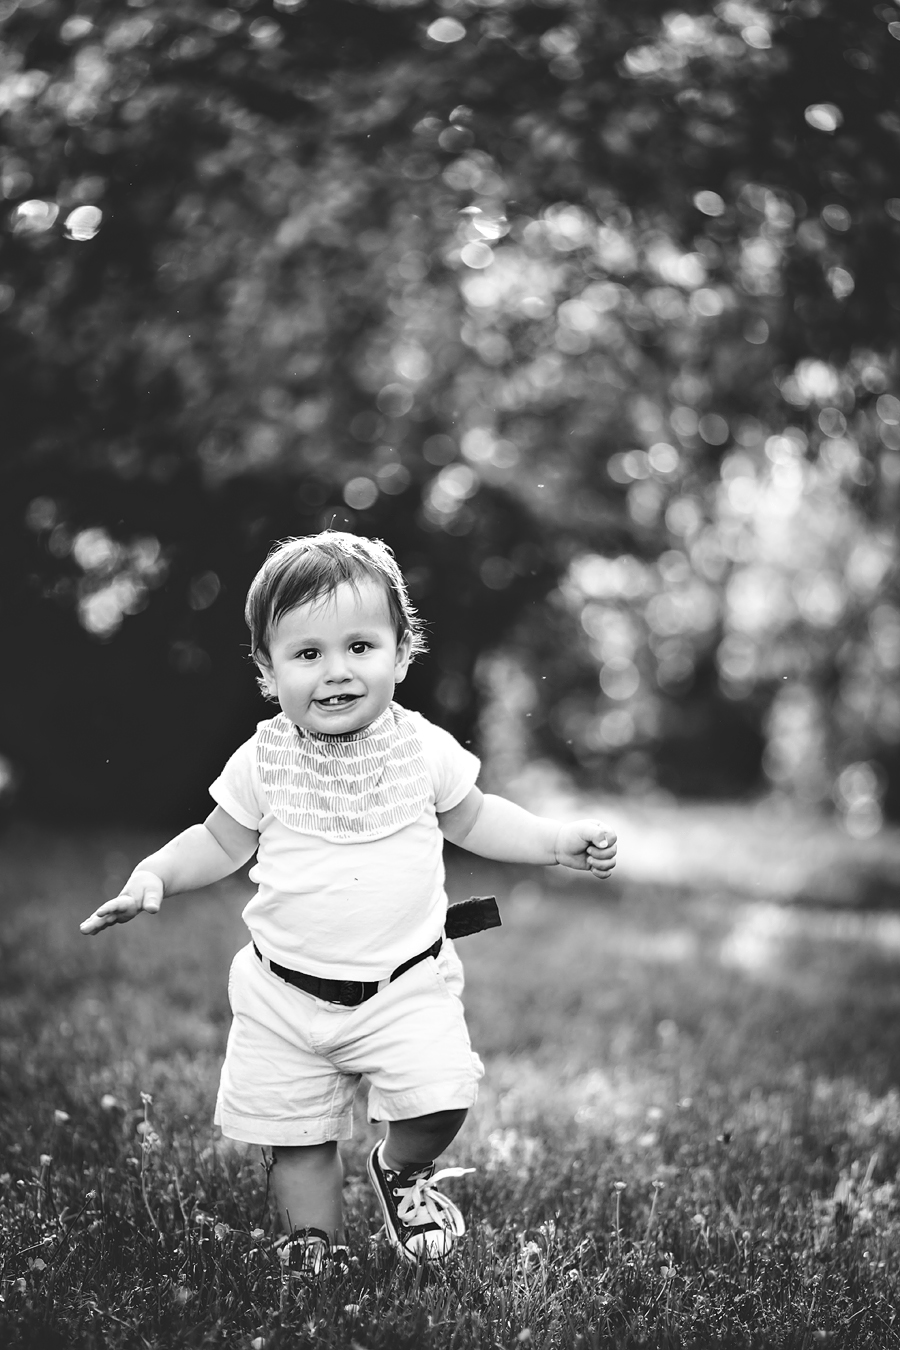 1 year old baby session | Tonya Teran Photography - Rockville, MD Newborn Baby and Family Photography